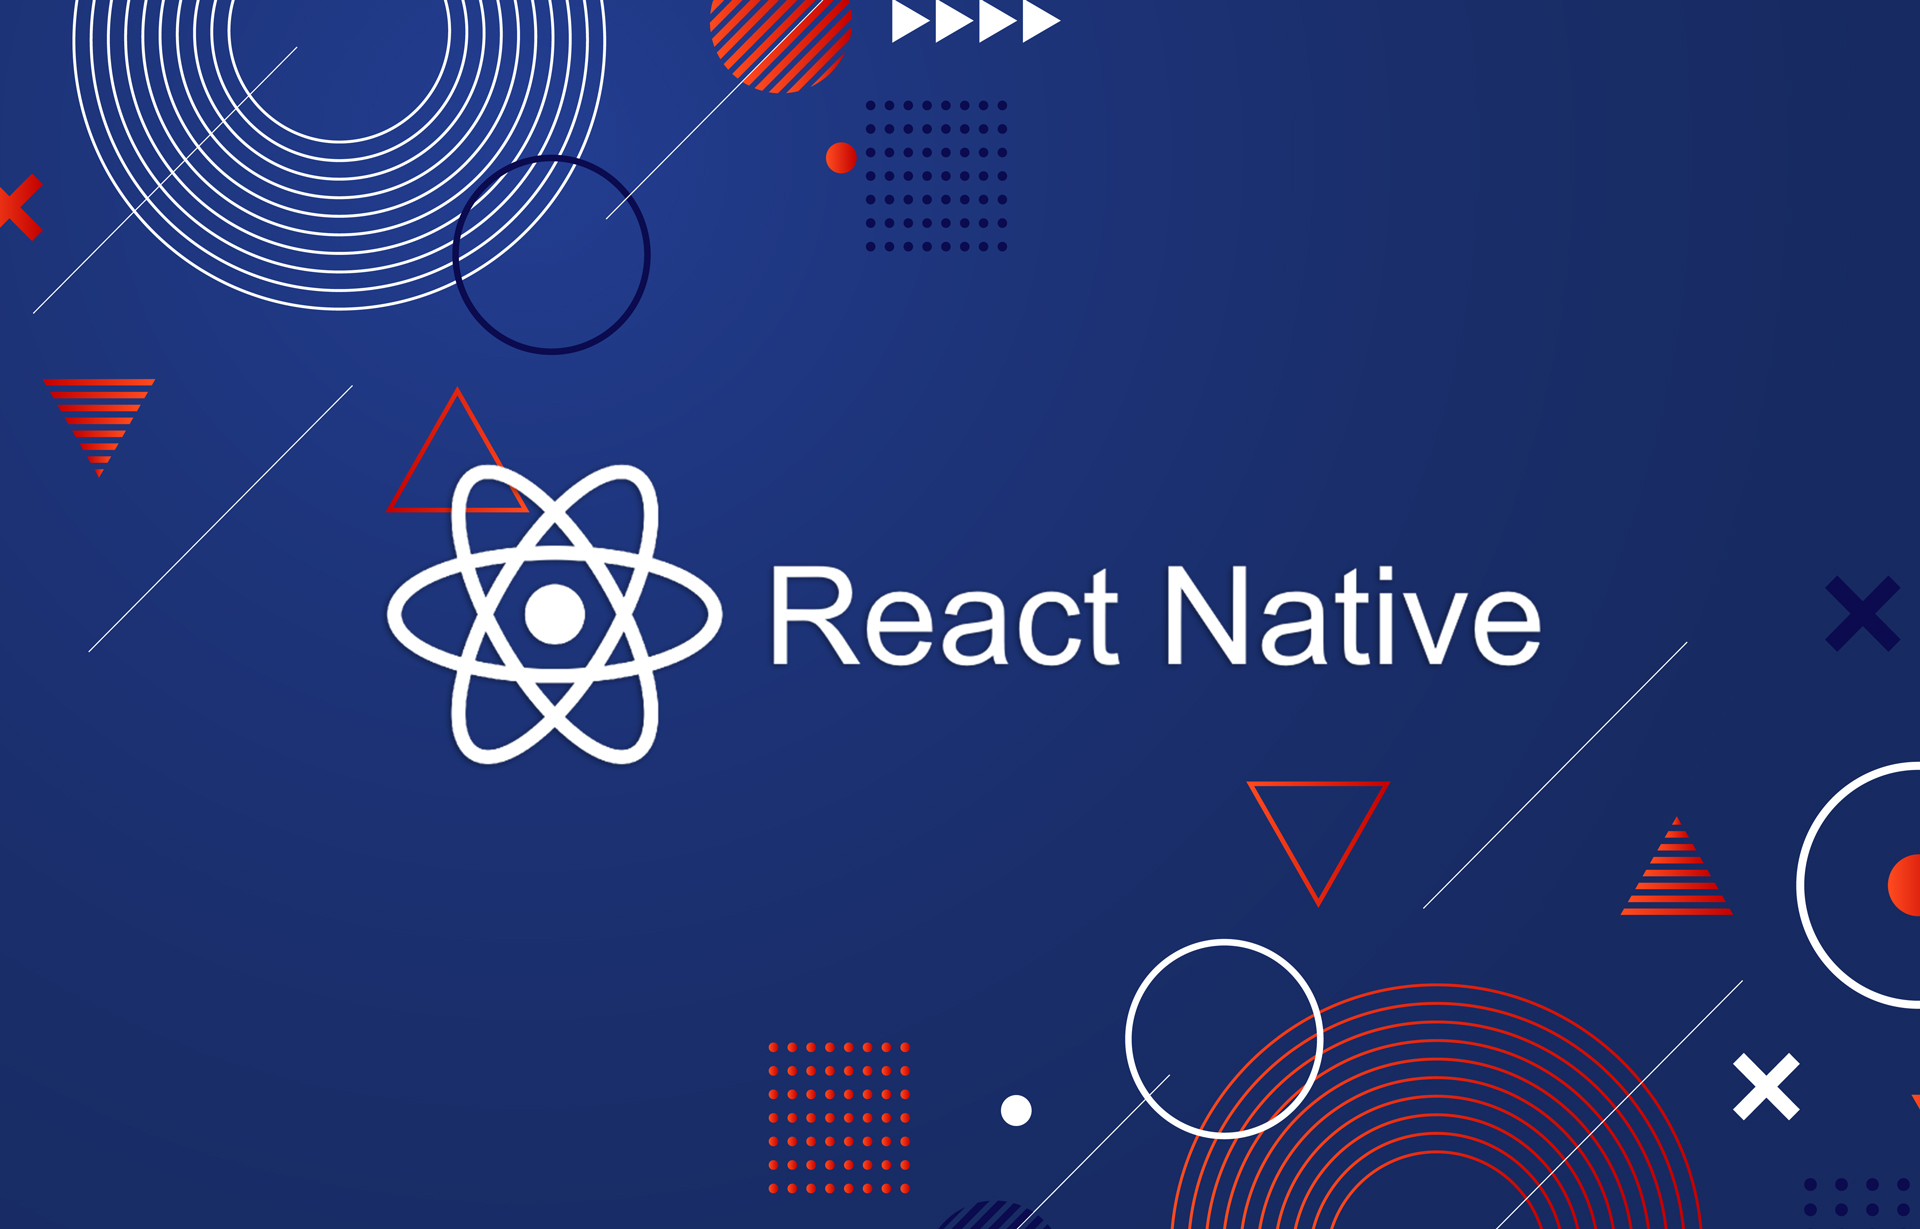 React Native: A New Perspective on Native Apps